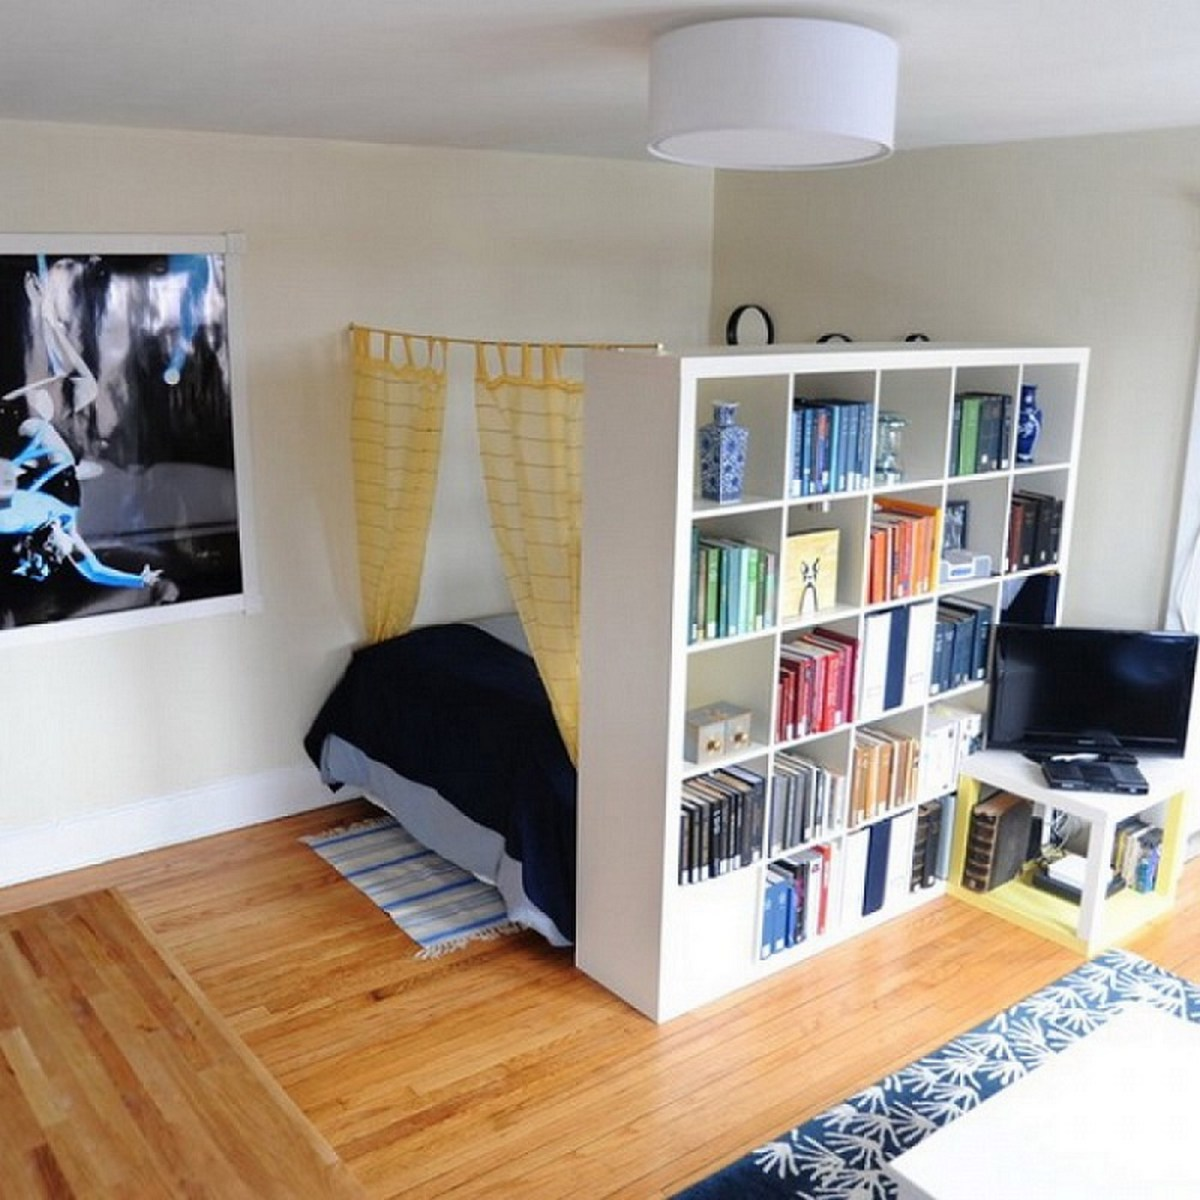 20 Perfect Small Apartment Decorating on a Budget - Decor ... on Apartment Decor Ideas On A Budget  id=79618